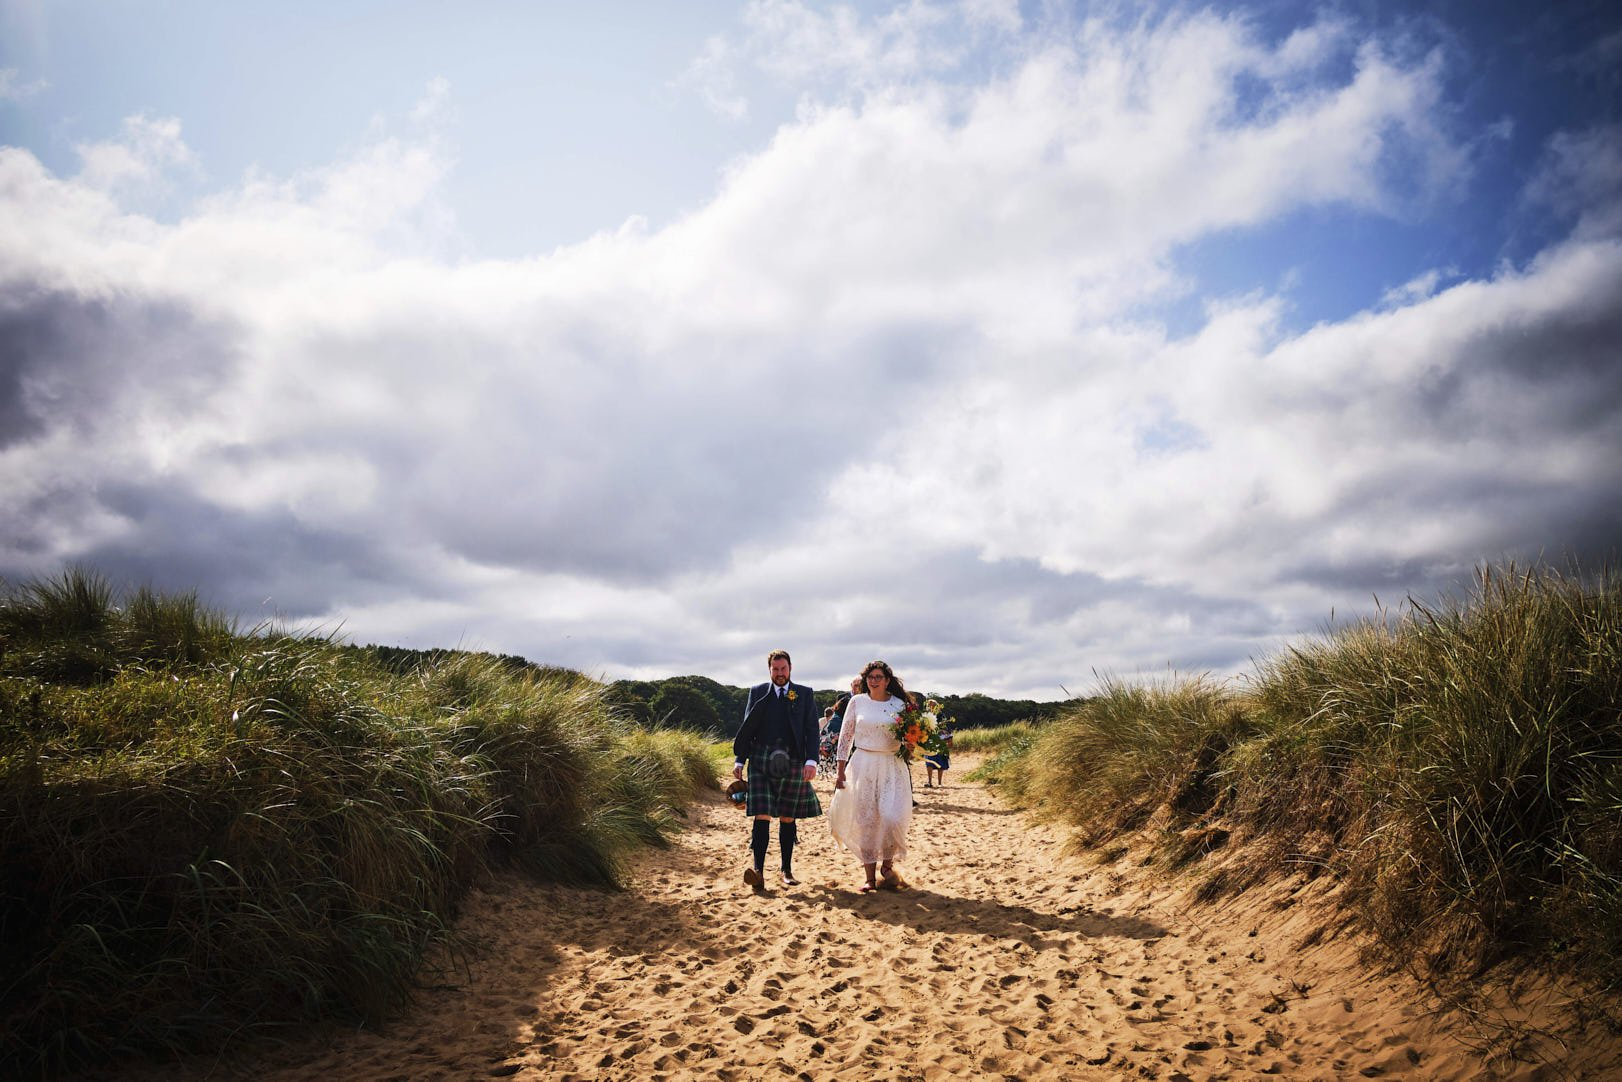 Image showing micro-wedding taking place at Yellowcraig Beach